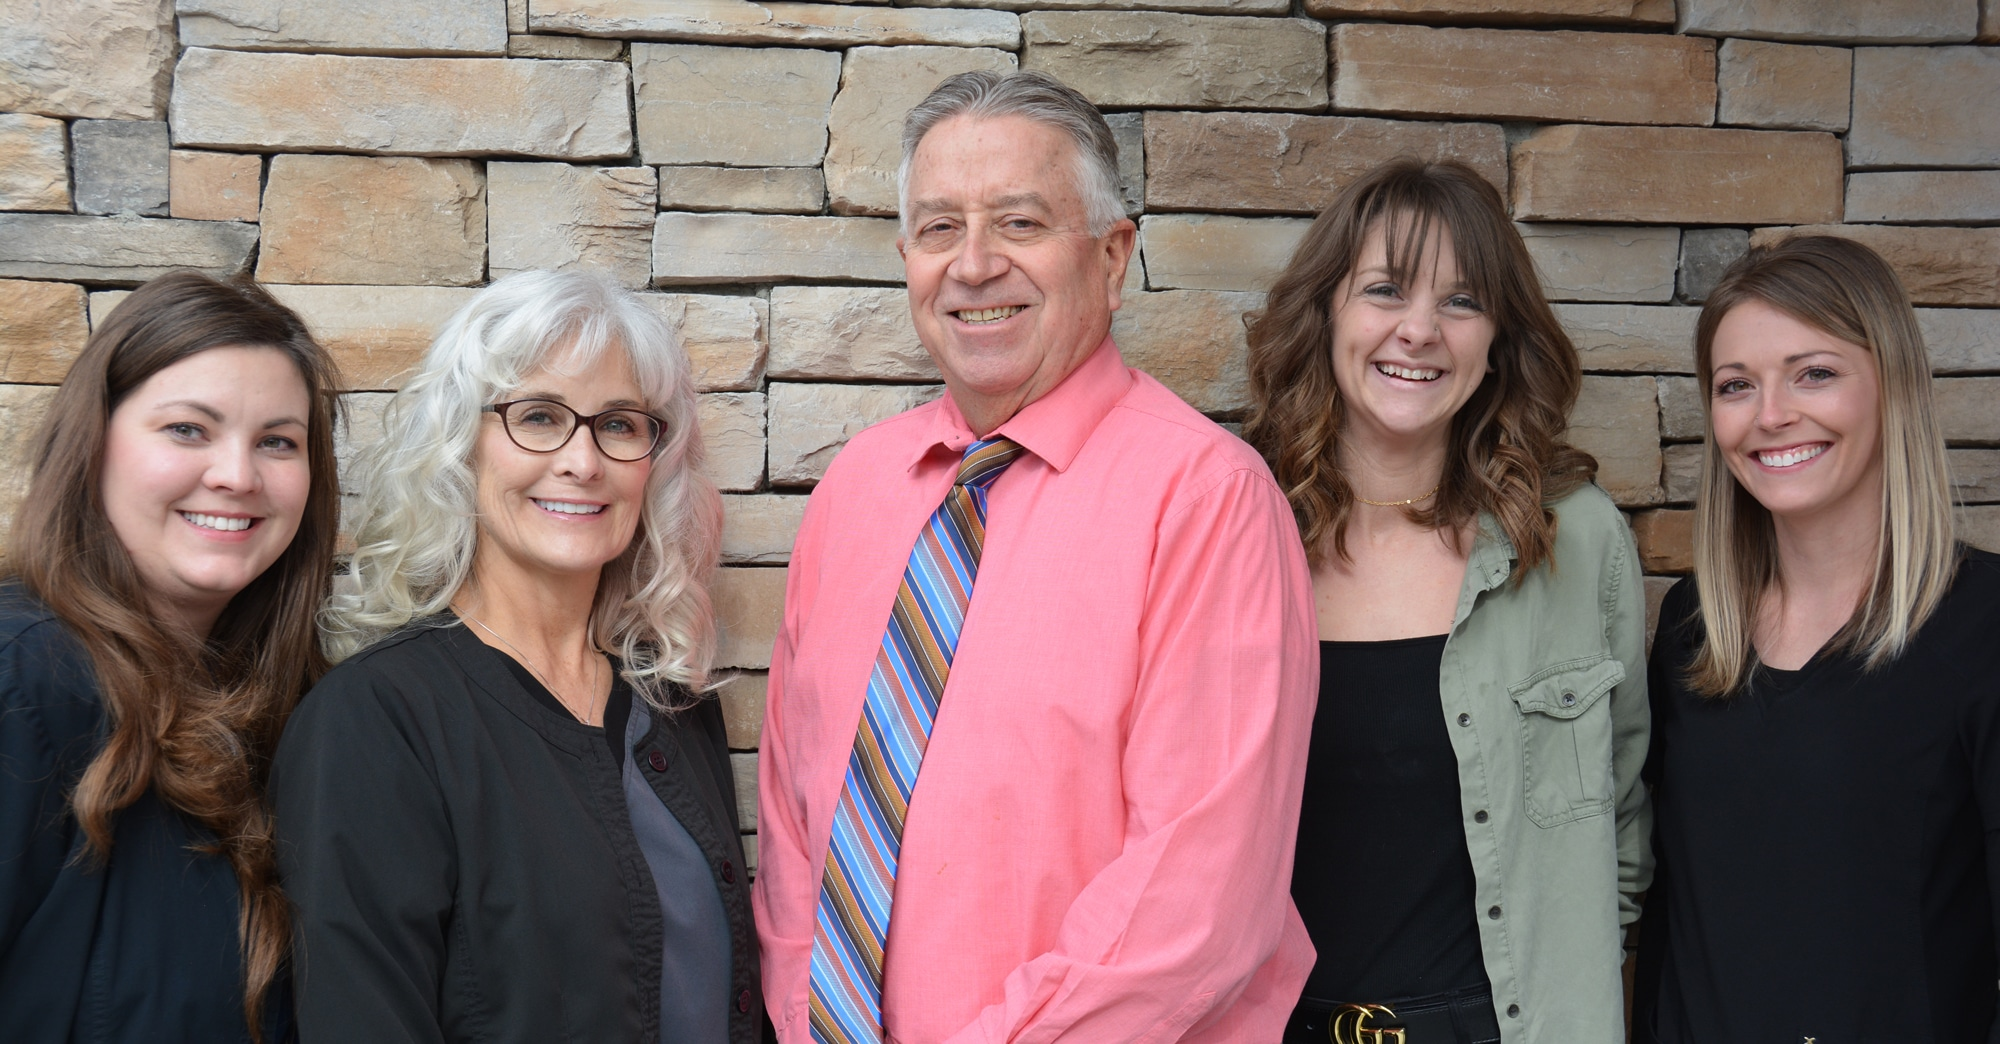 Our Great staff here at Advantage Dental